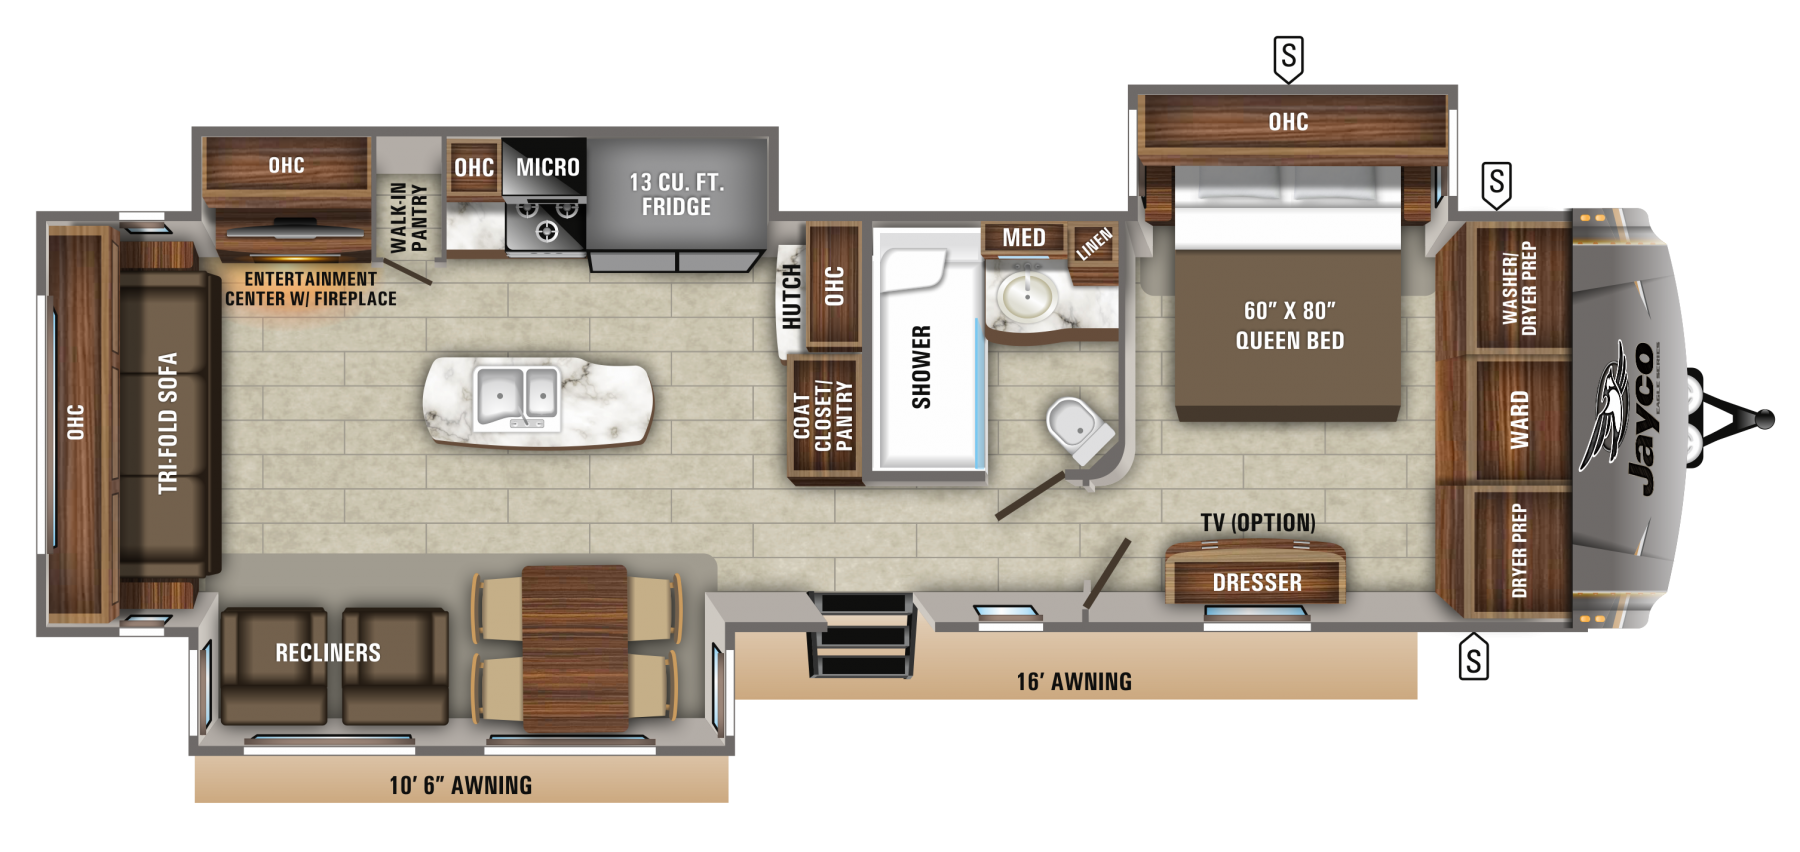 2020 Eagle Travel Trailers 330RSTS Jayco, Inc. in 2020